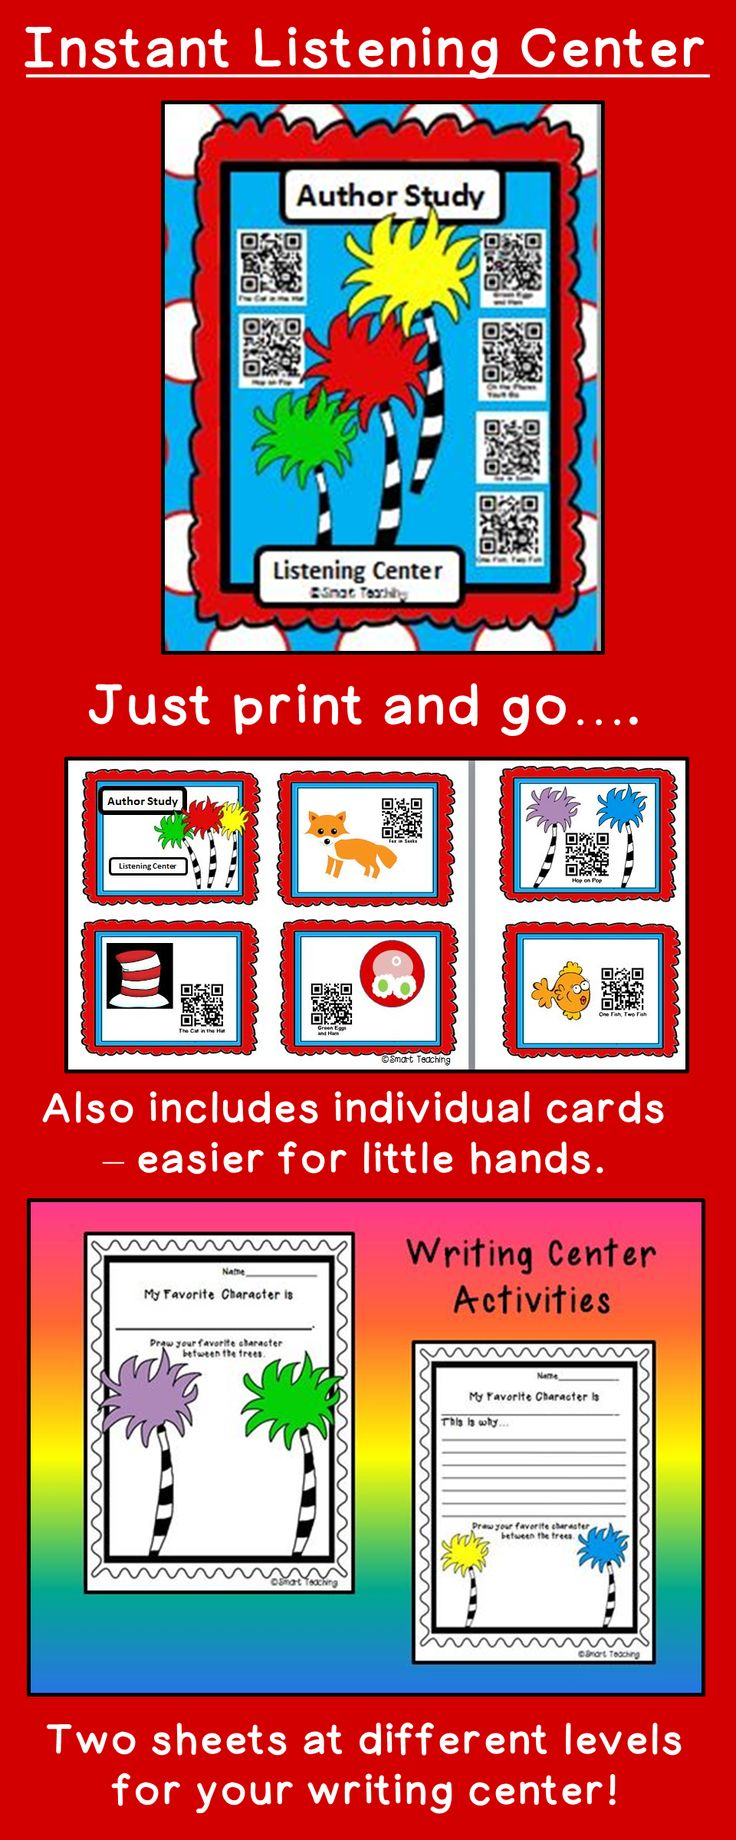 Make setting up your centers easy this week!  Children will love scanning the QR codes in the listening center, and writing about their favorite character in the writing center.  $